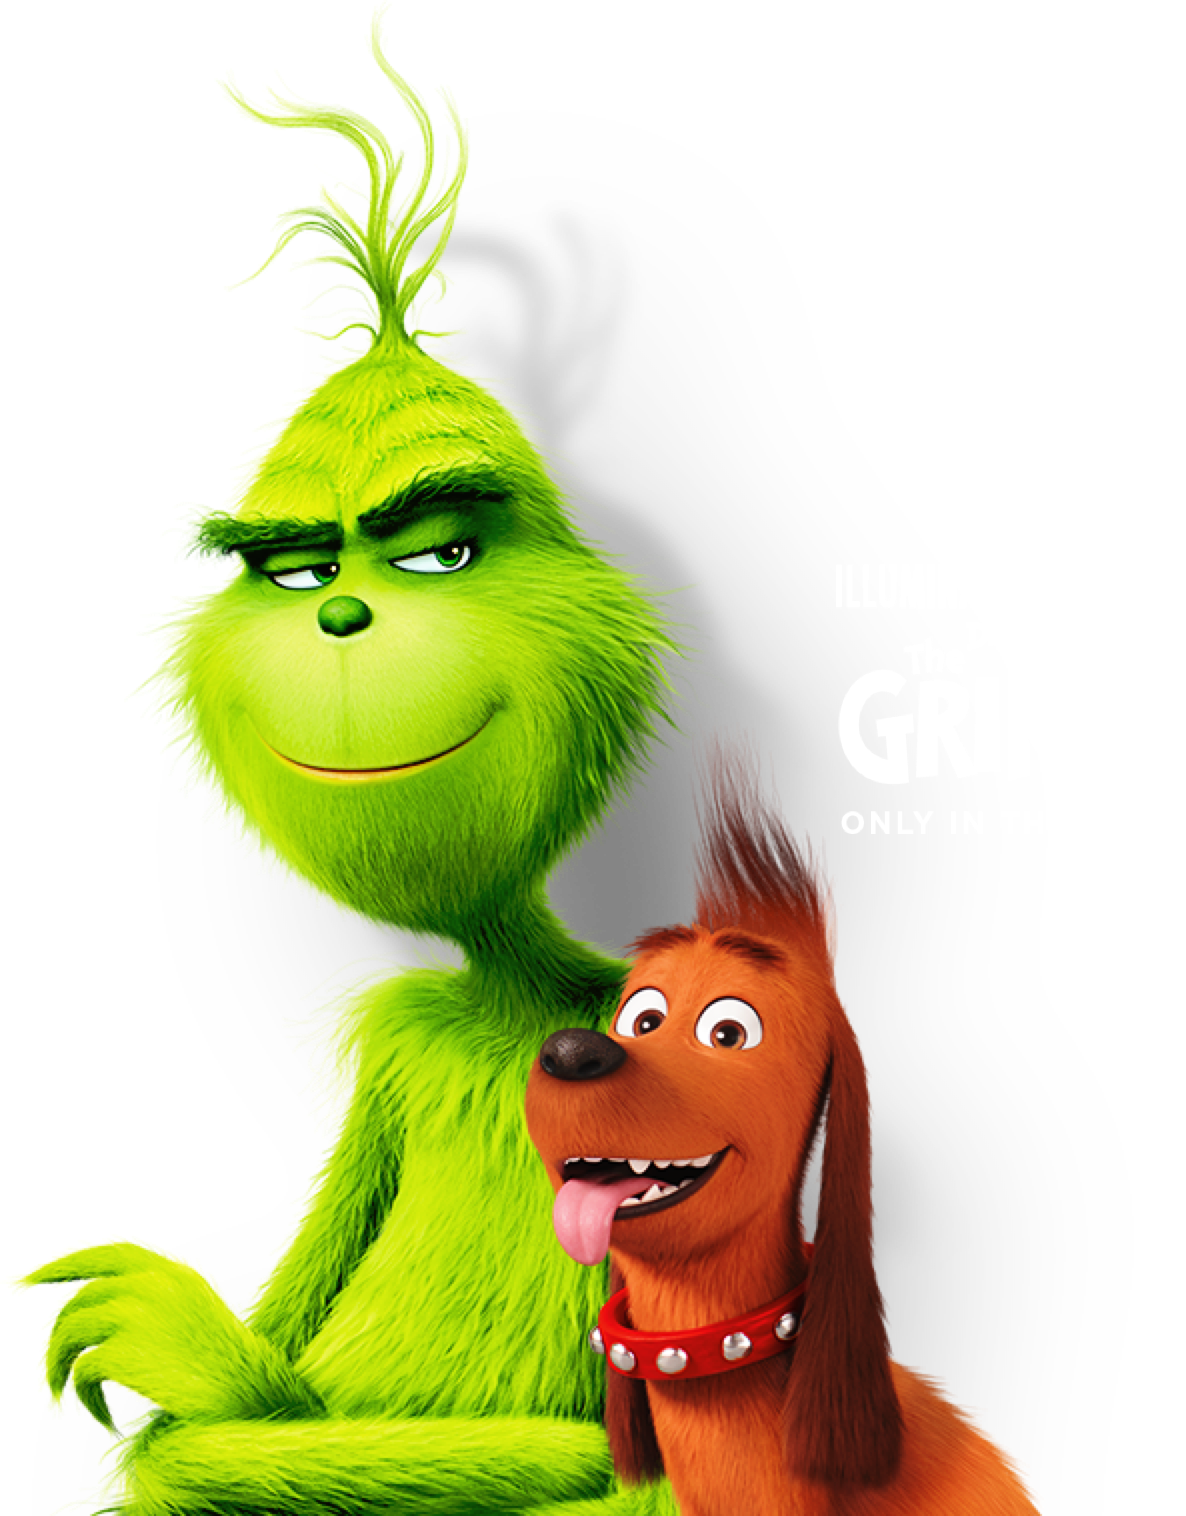 View And Download High Resolution Seuss The Grinch For Free The Image Is Transparent And Png Format Grinch The Grinch Movie Cute Disney Wallpaper